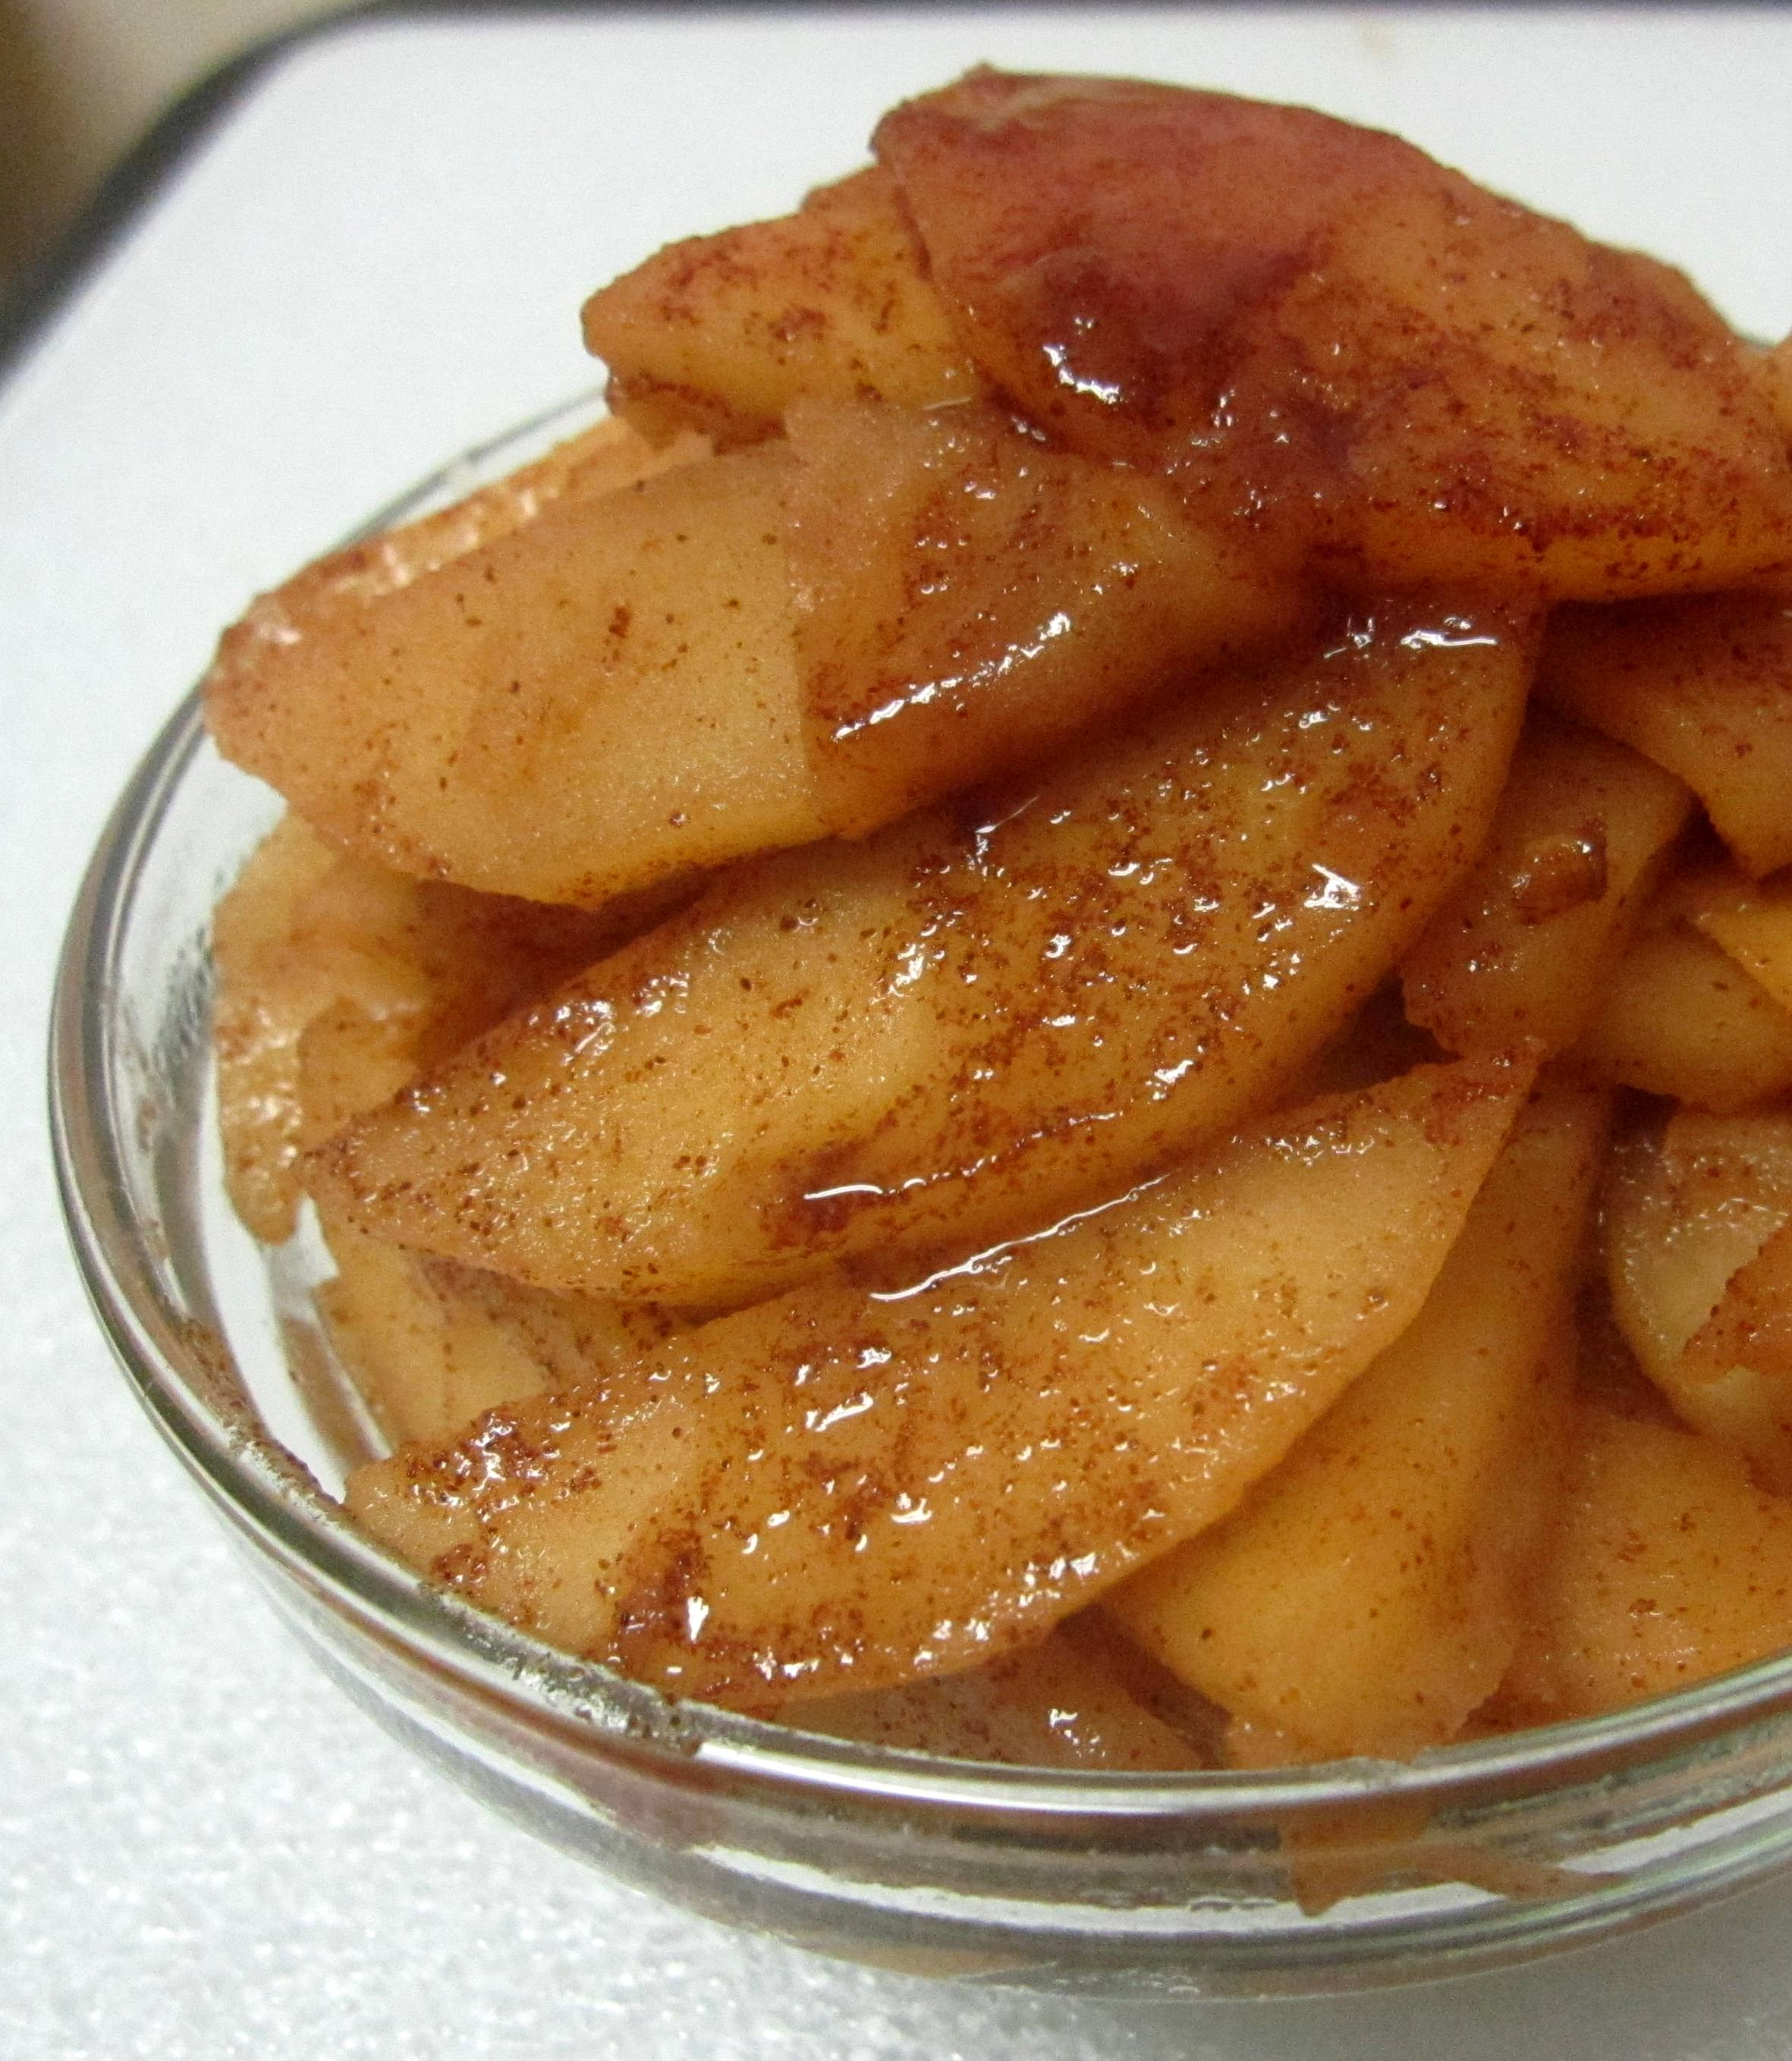 Pan-fried apples Pic